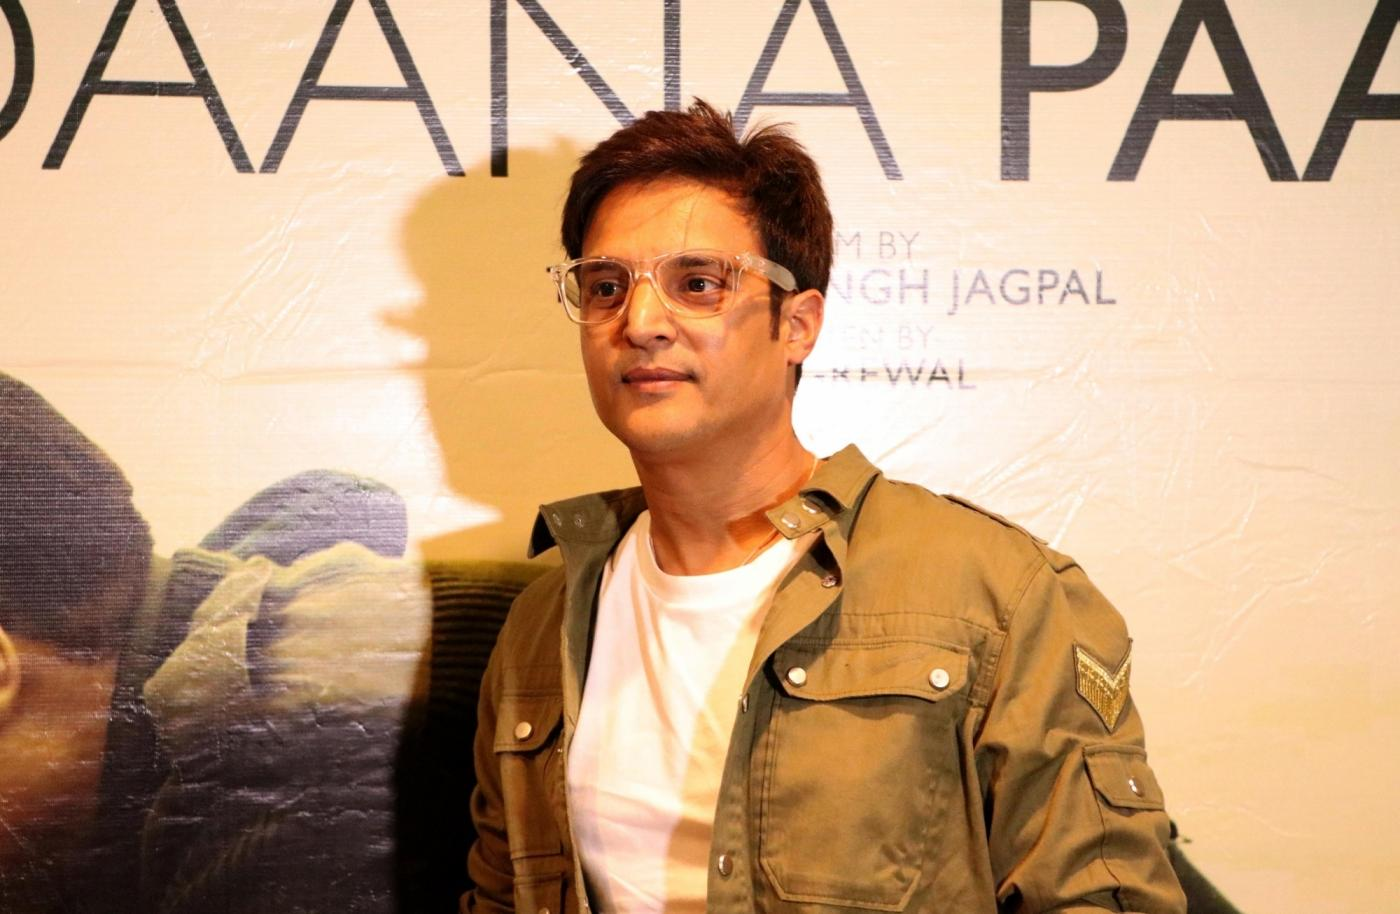 Amritsar: Actor Jimmy Sheirgill during the promotion of his upcoming film